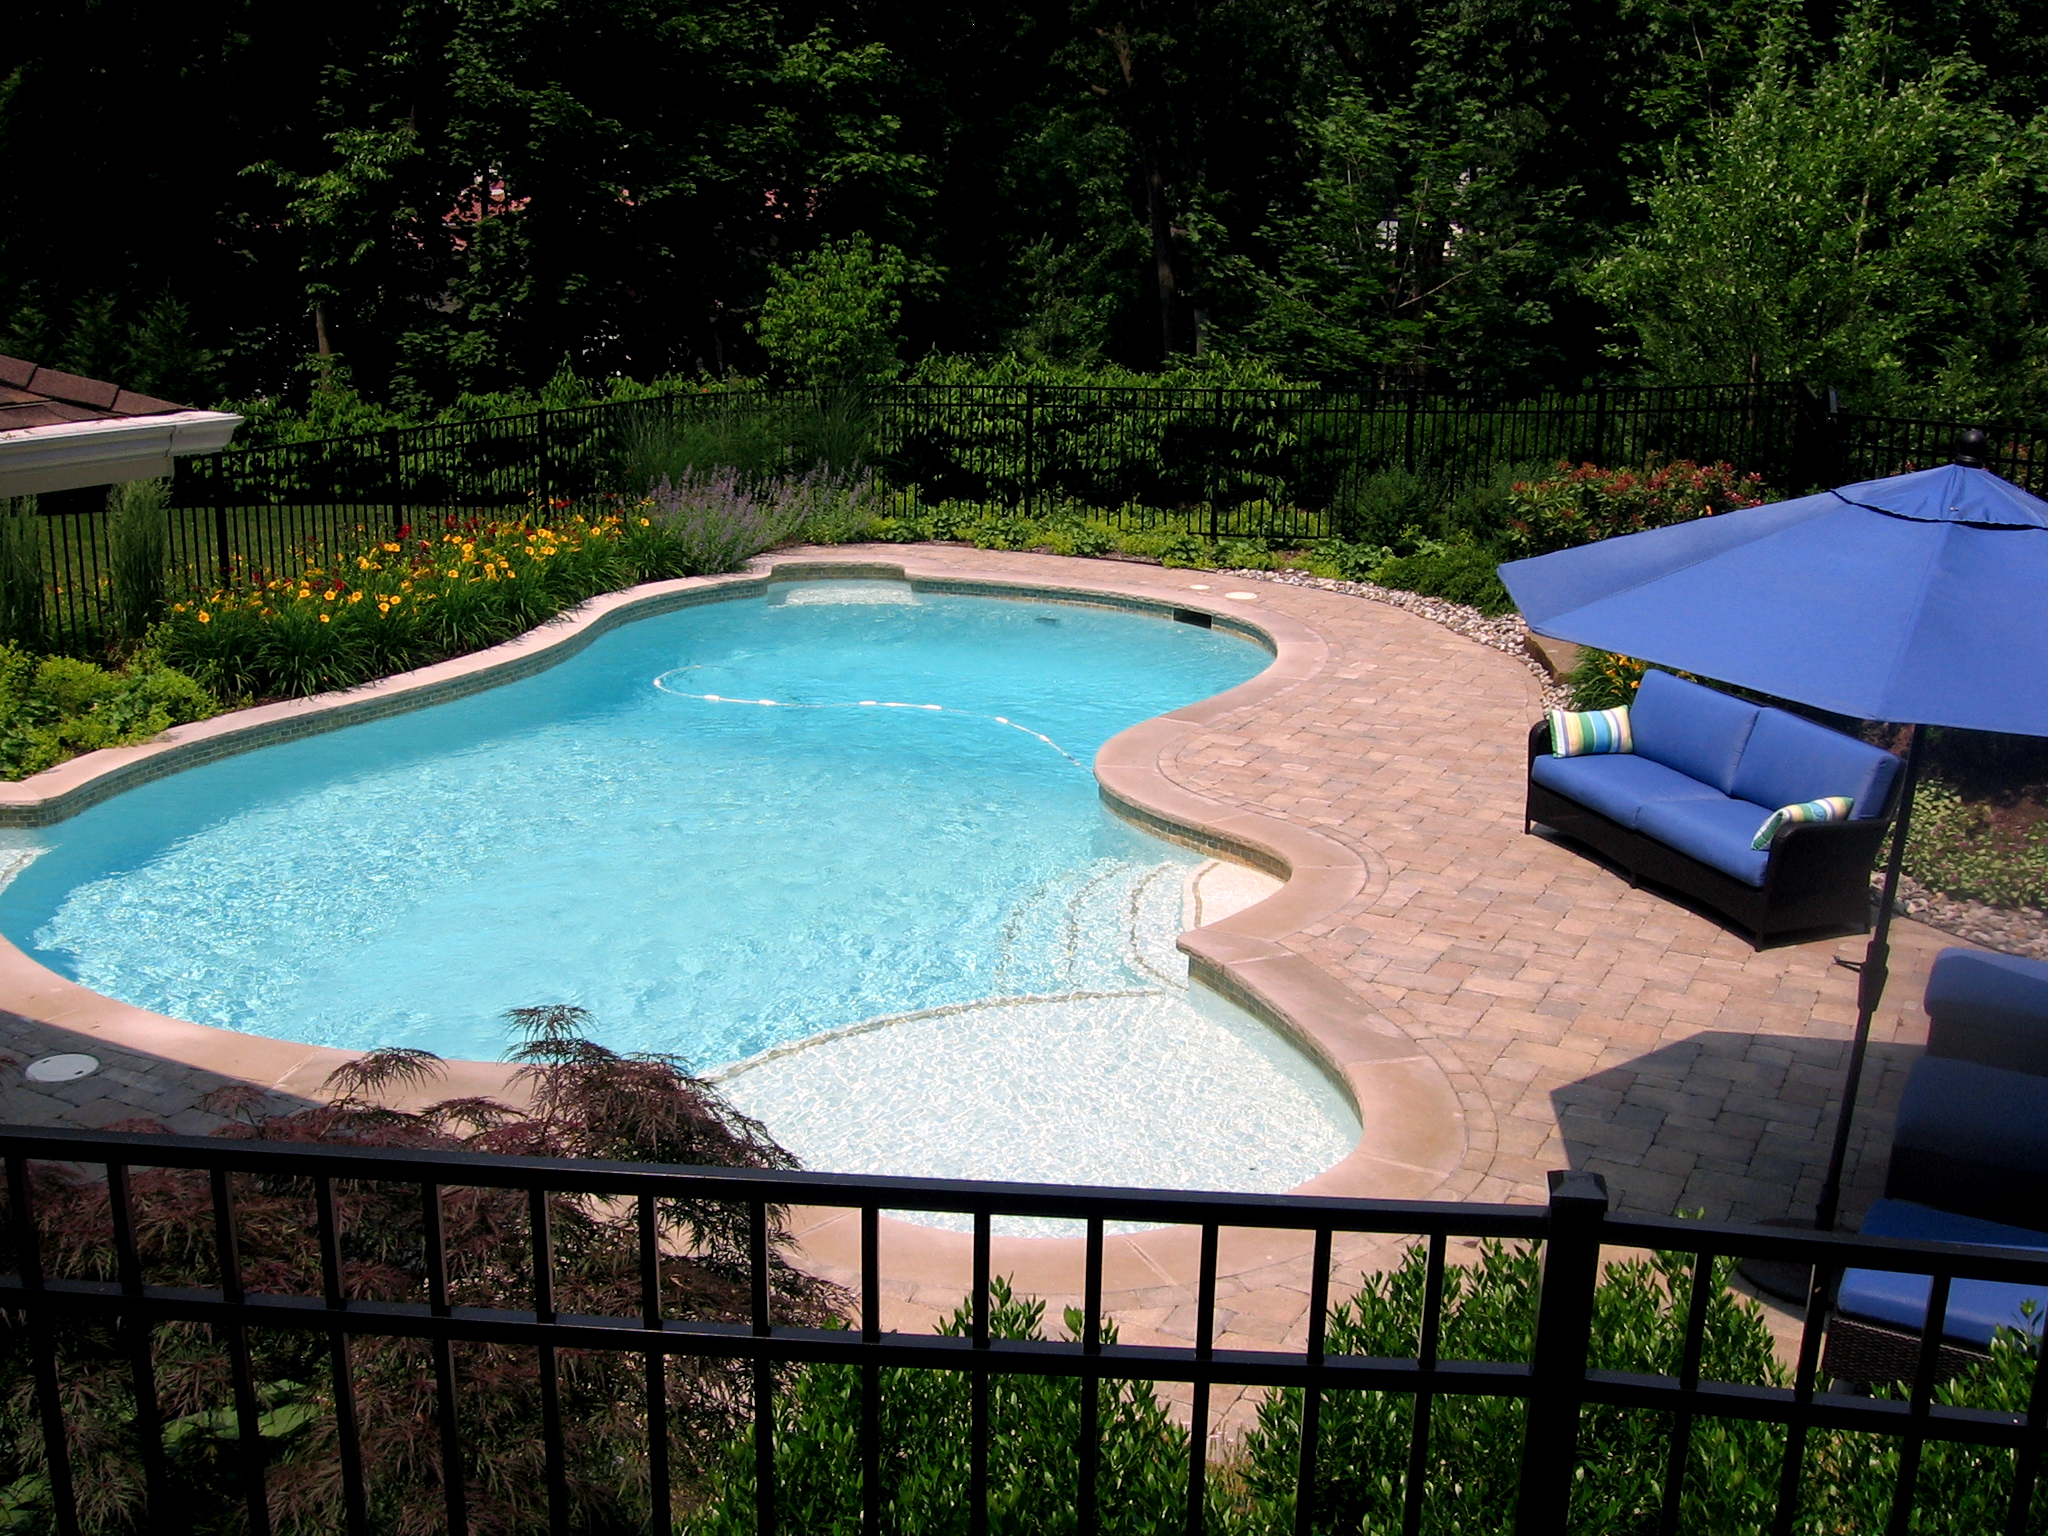 Inground pools archives cipriano landscape design and for Pool design inc bordentown nj